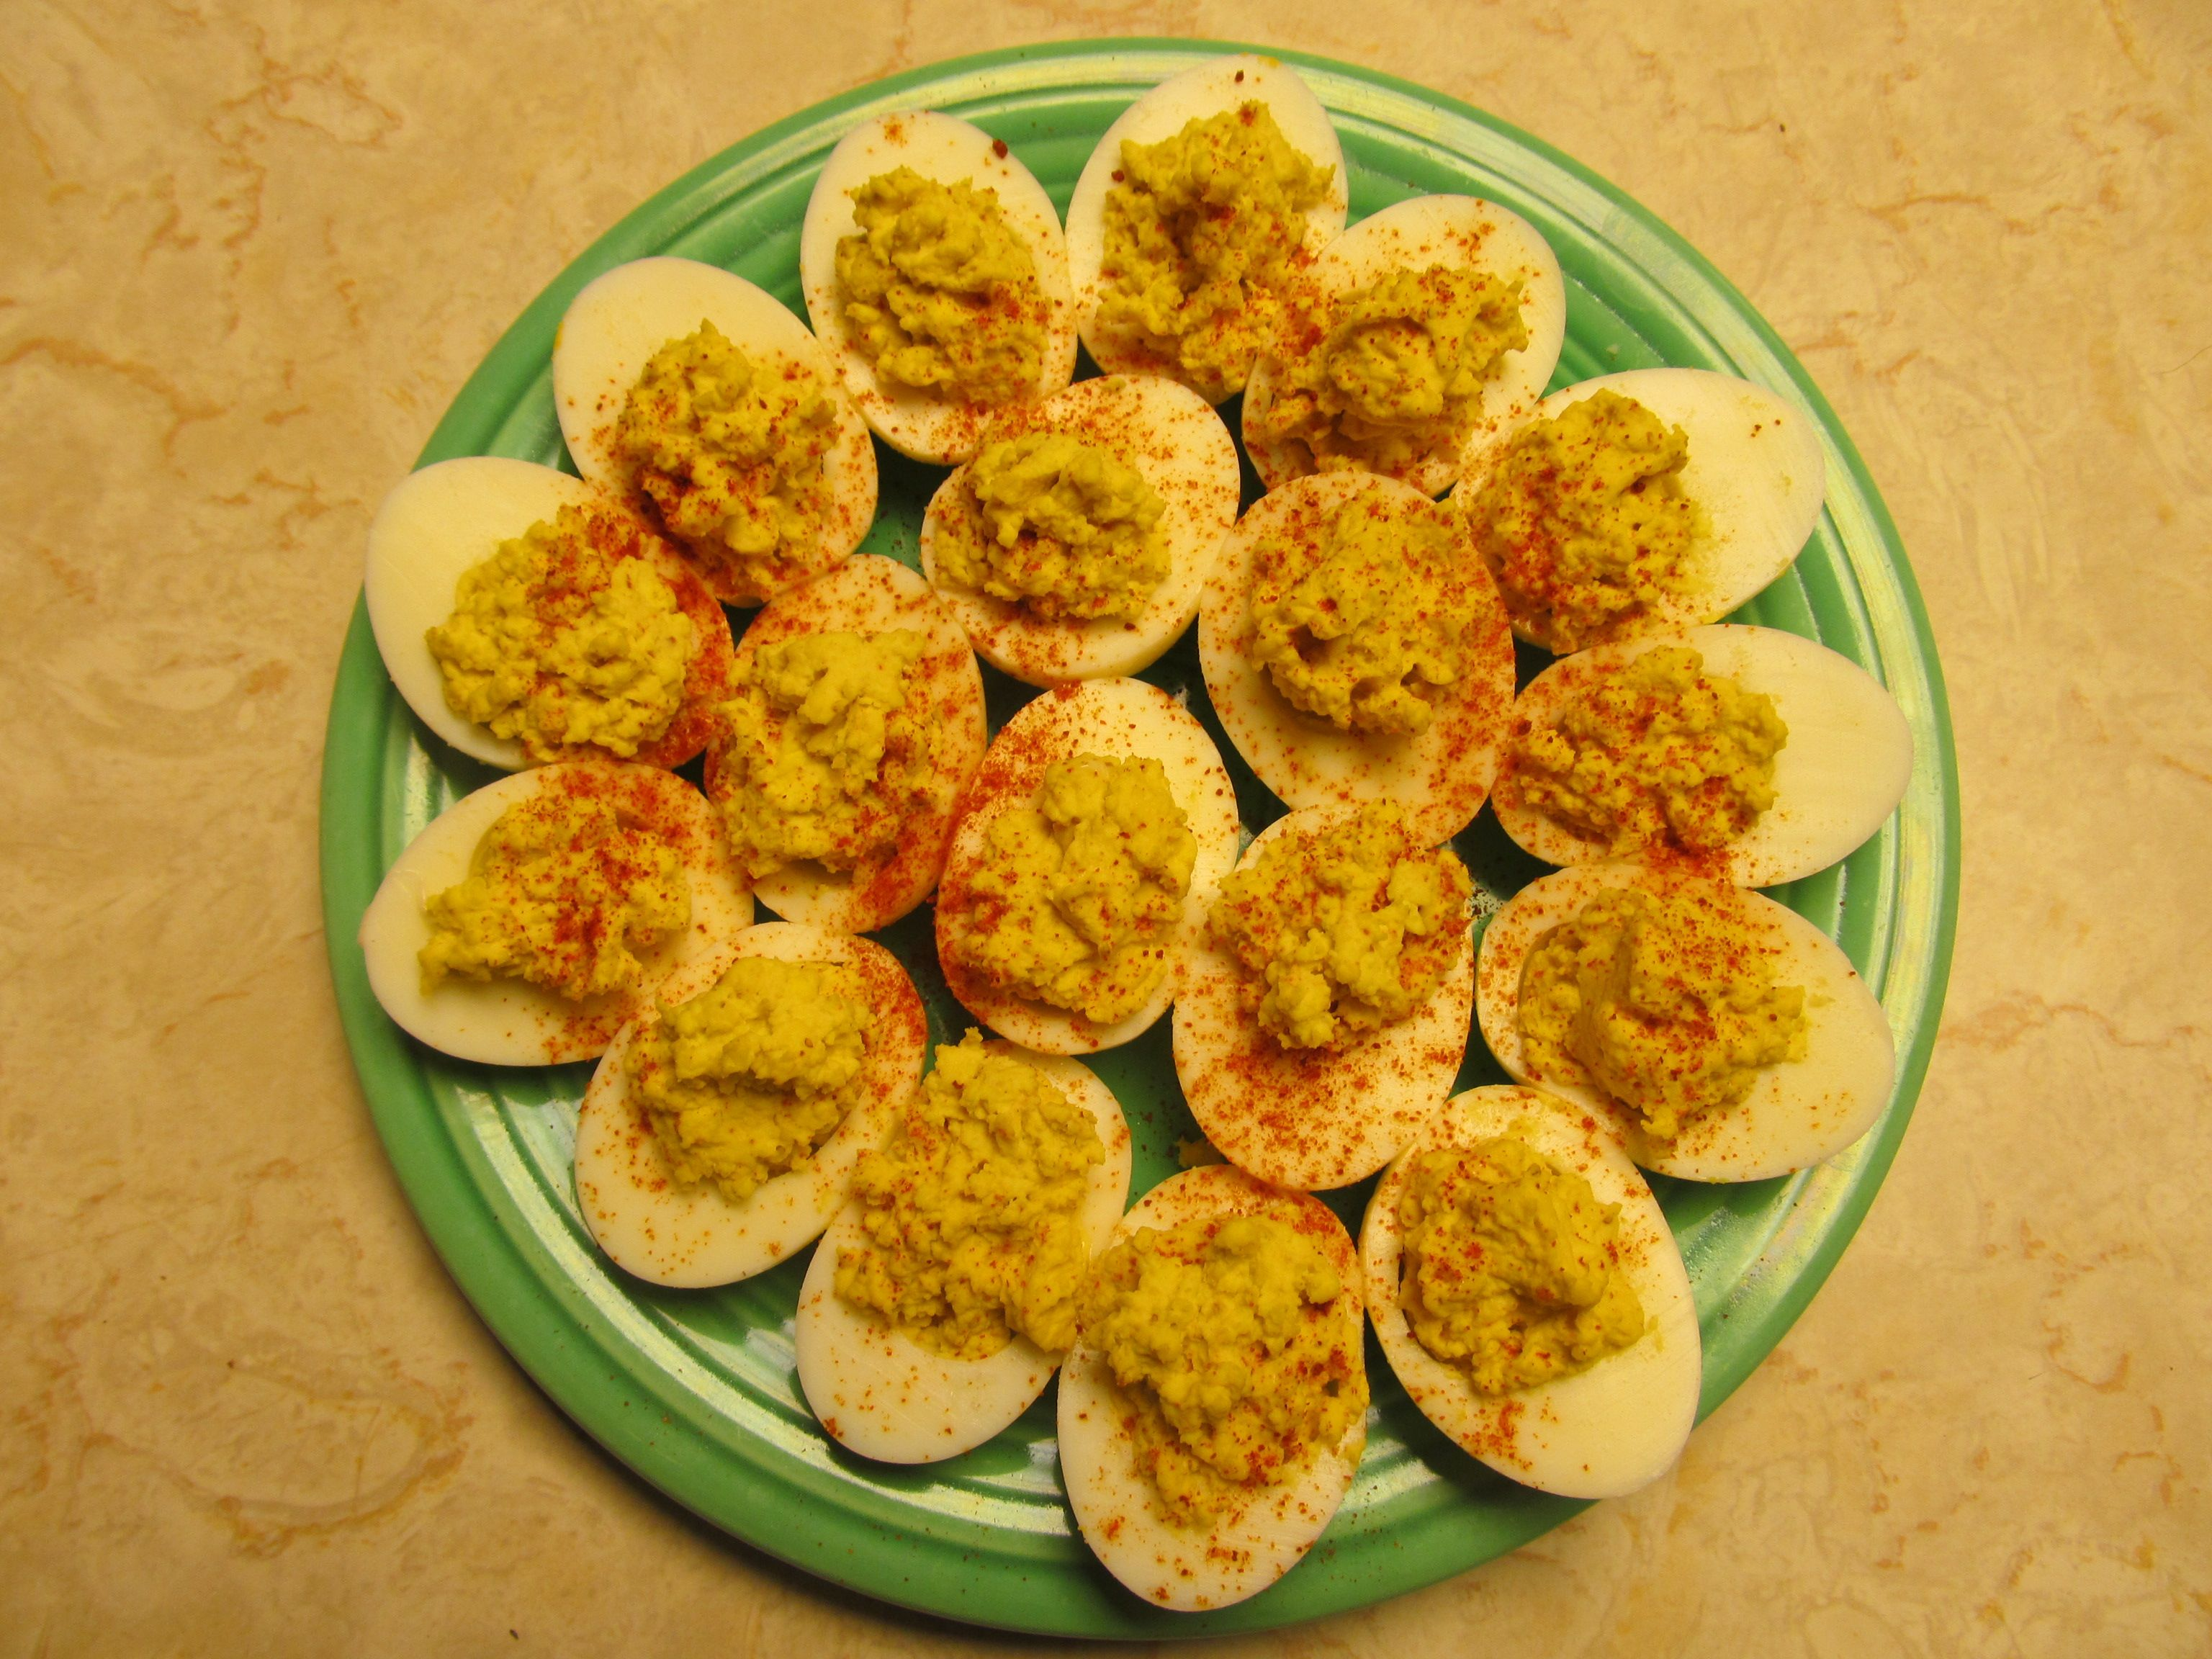 Low sodium deviled eggs low sodium recipes pinterest devil low sodium deviled eggs if youre eating less than mg of salt per day my low sodium deviled eggs recipe is huge boost to liver kidney and heart diets forumfinder Gallery